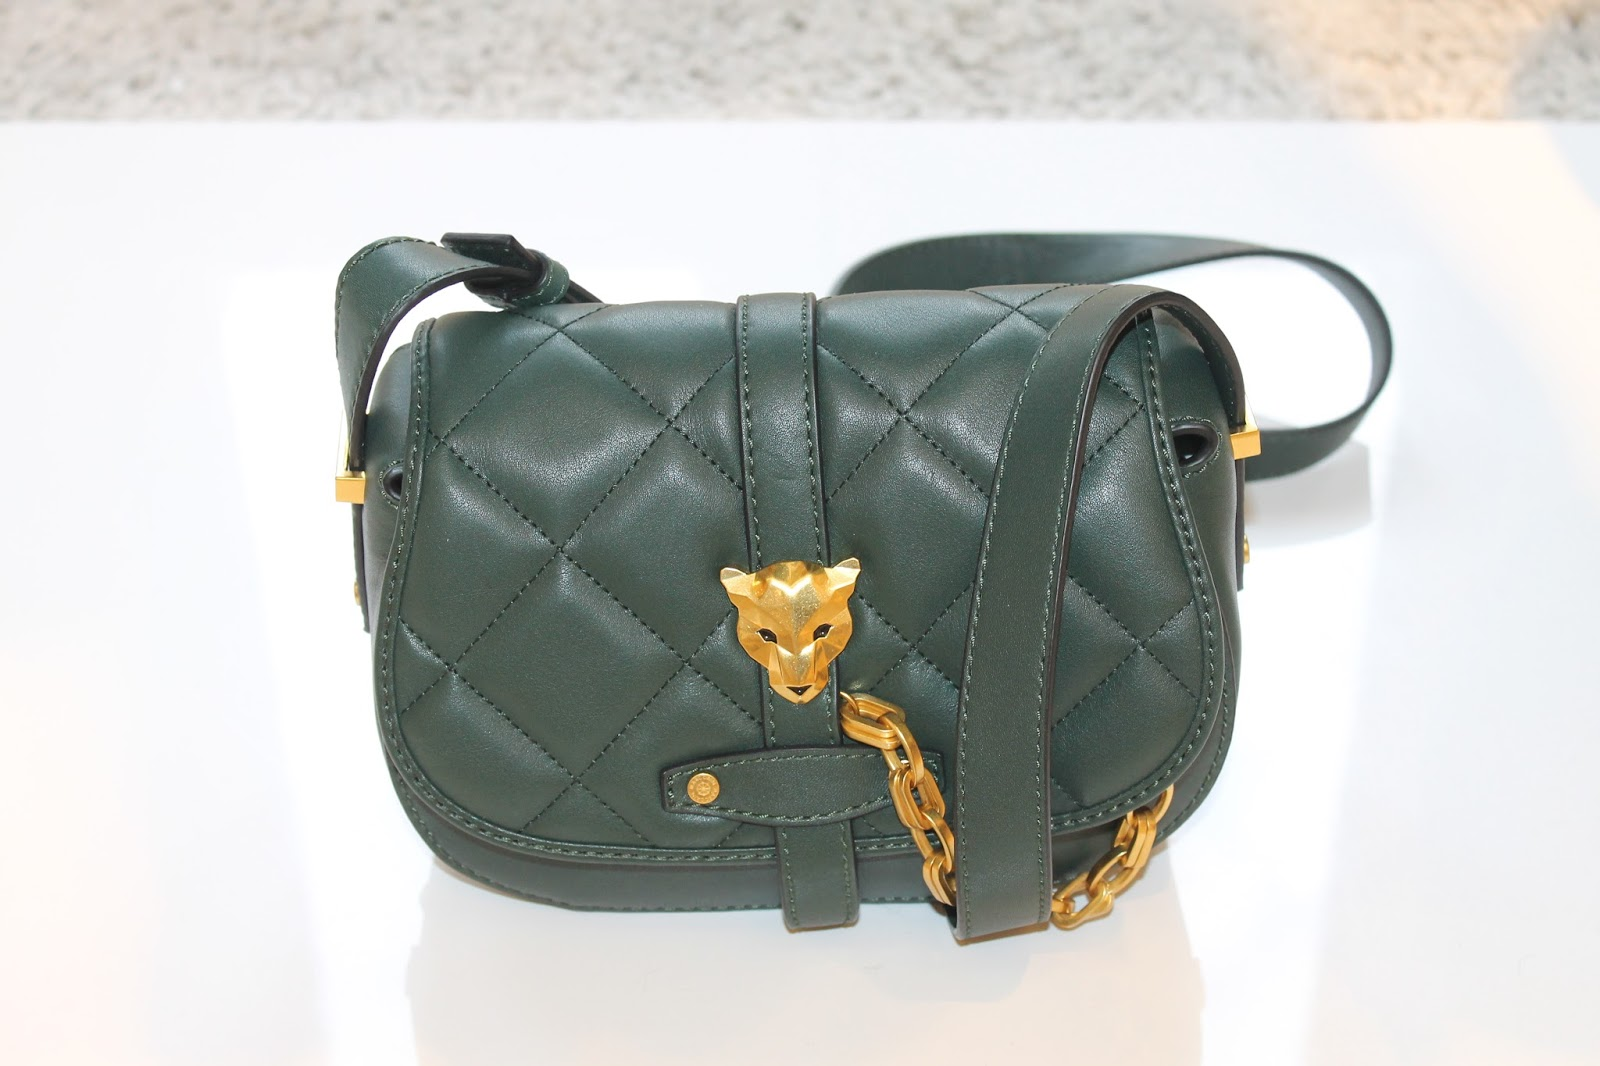 67755ea7f0 ... it gorgeous this quilted cross body bag by Marc Cain ? It is made of  calf leather, with gold hardware in this rich dark green colour. The shoulder  strap ...